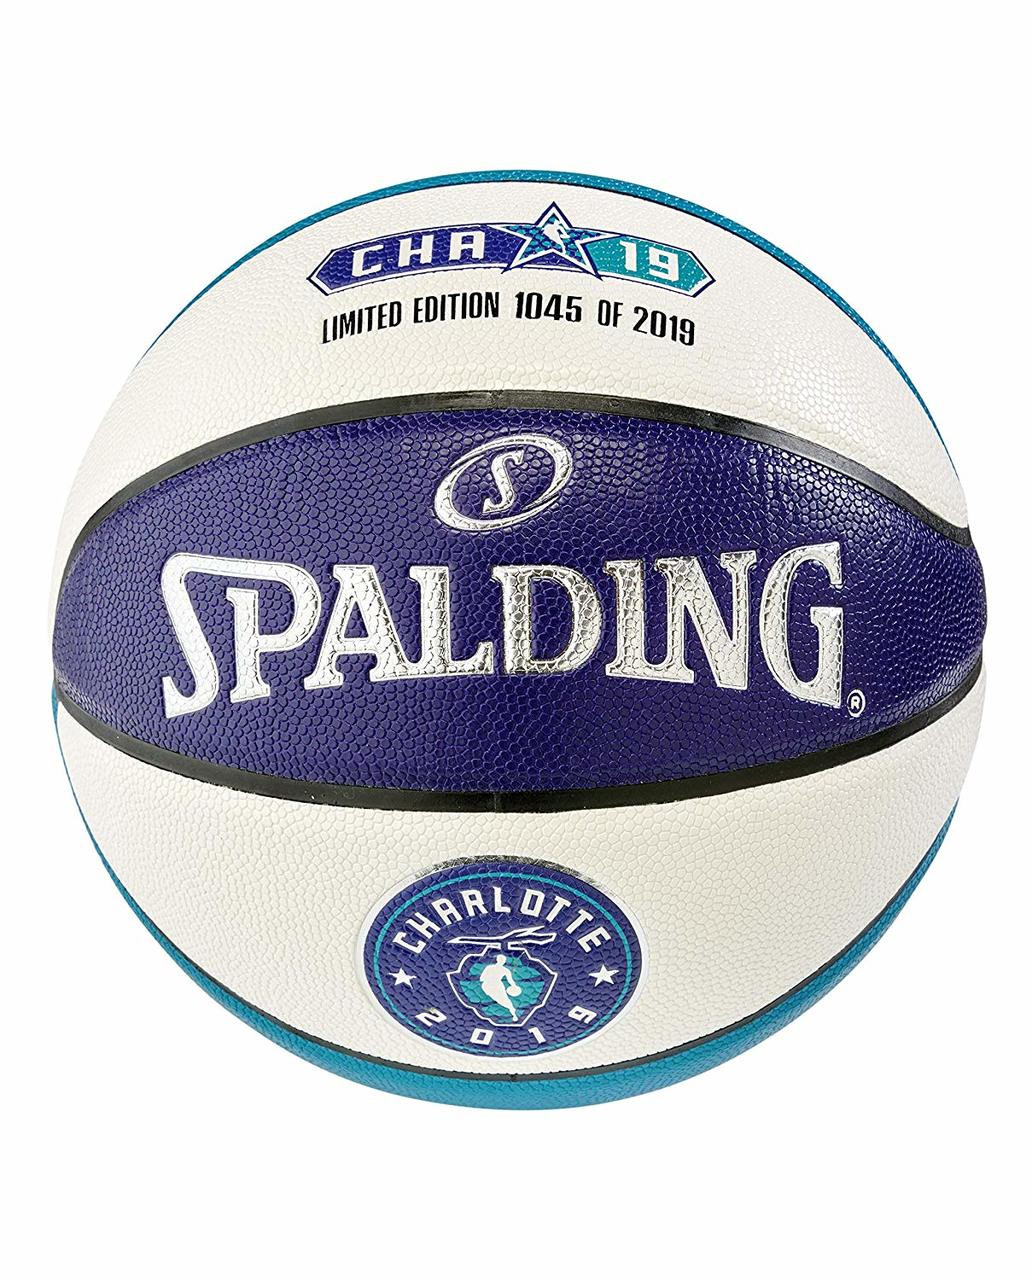 Spalding all star Volleyball Blue